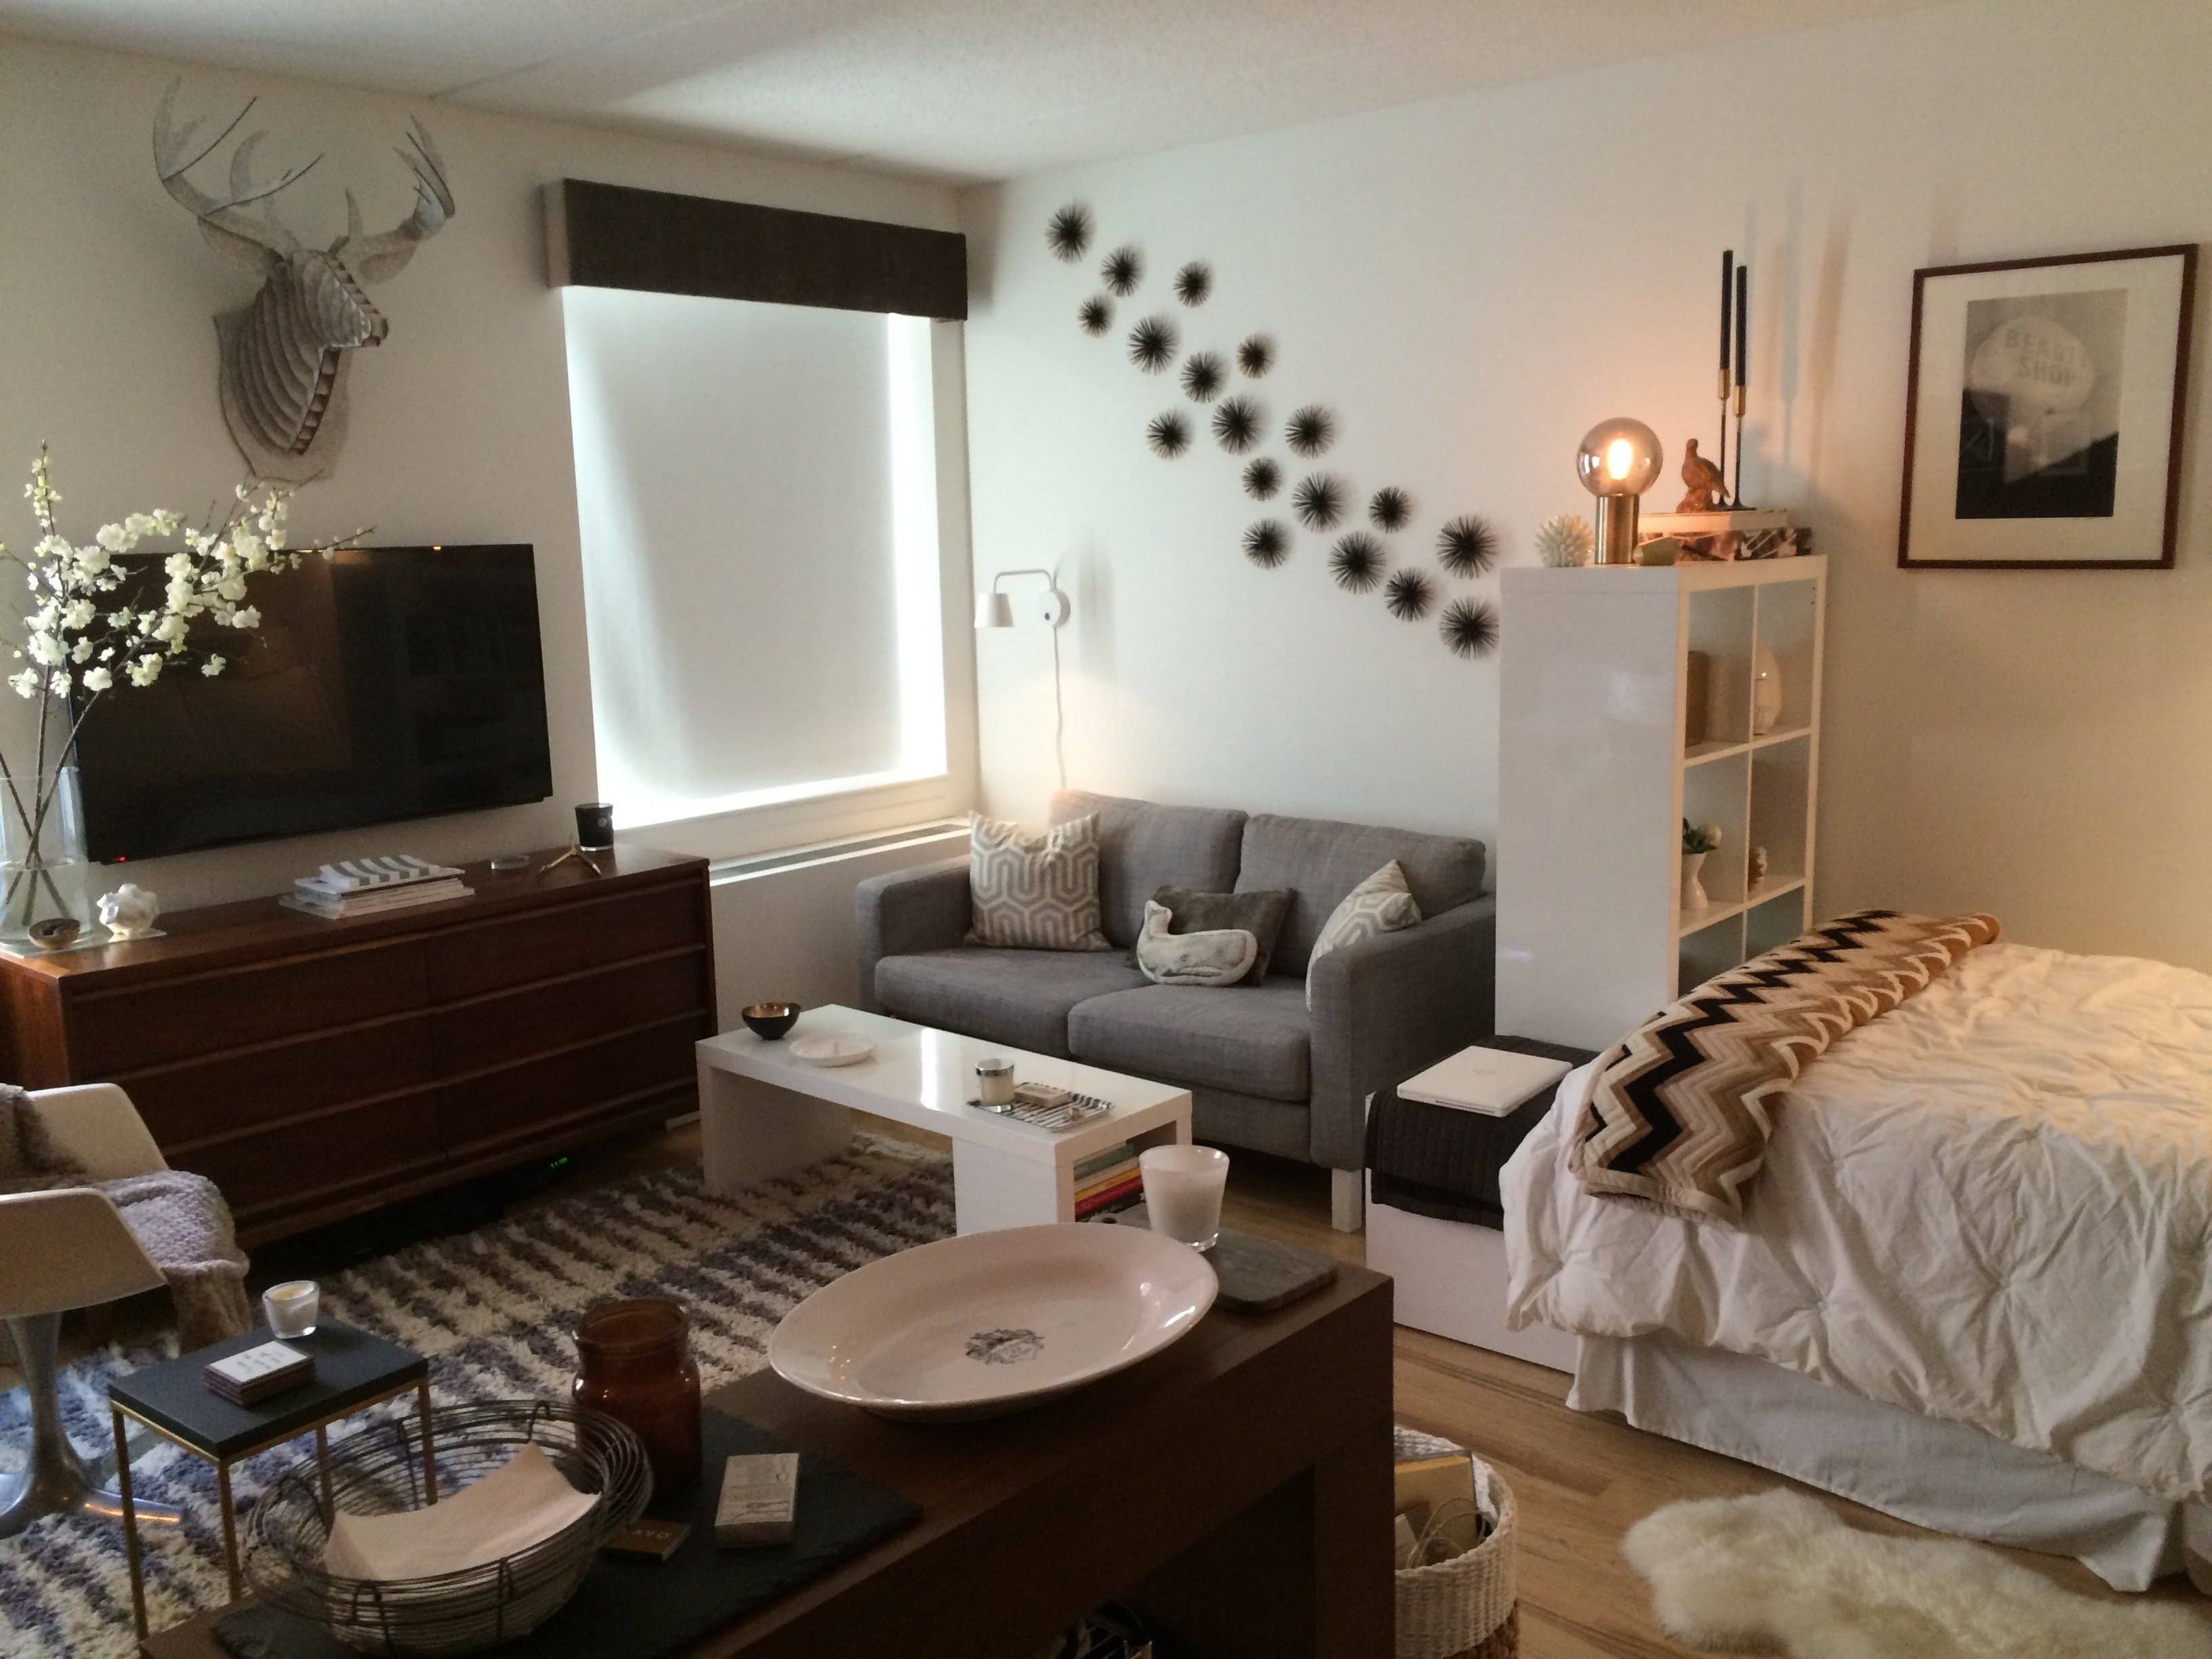 5 studio apartment layouts that work - Small Apartment Bedroom Decorating Ideas White Walls